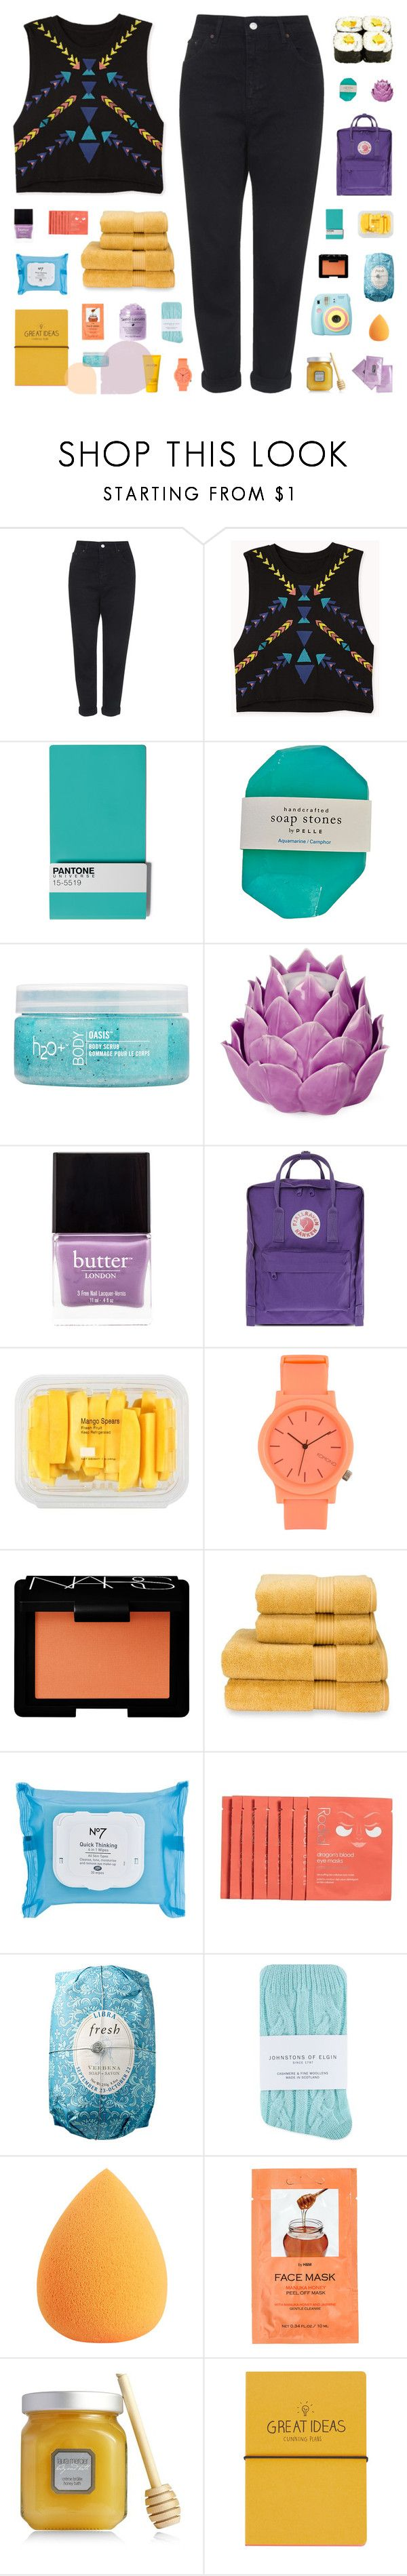 """""""~ O11916"""" by khieug ❤ liked on Polyvore featuring Topshop, Forever 21, Seletti, H2O+, Zara Home, Butter London, Fjällräven, MANGO, Komono and NARS Cosmetics"""